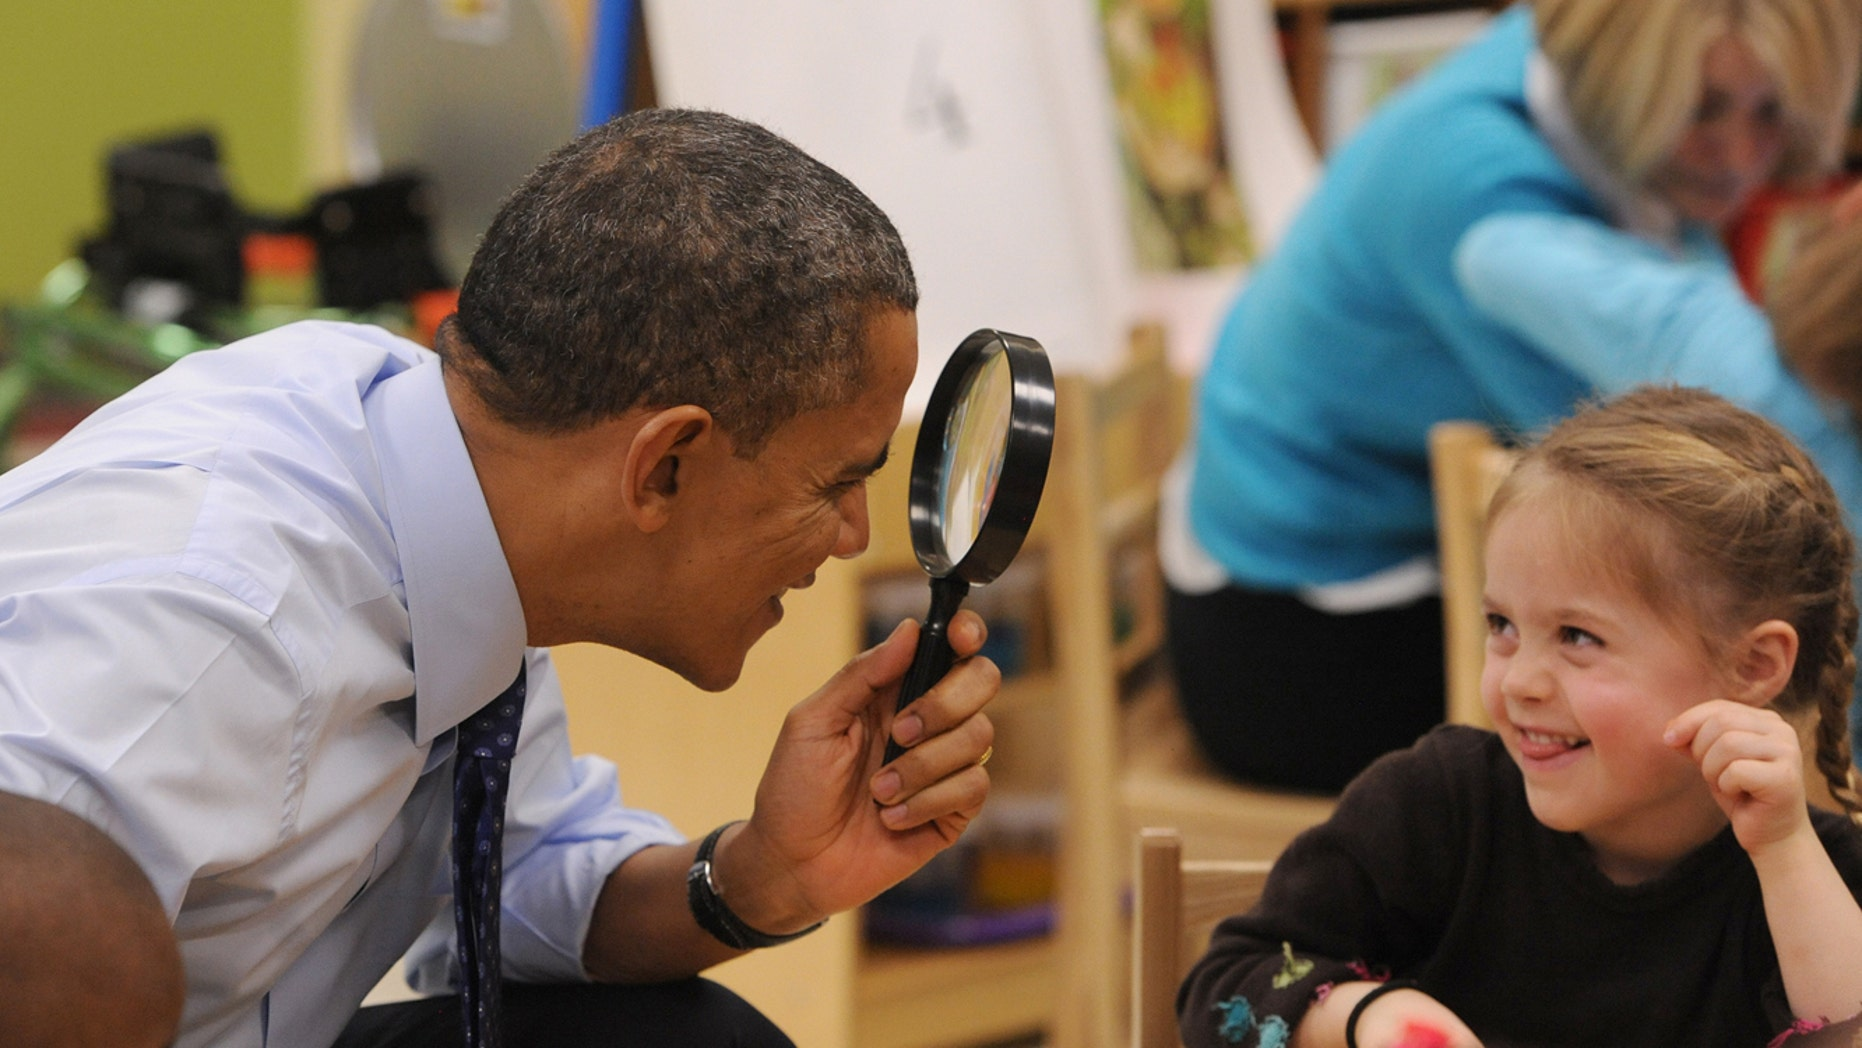 FILE: Feb. 14, 2013: President Obama plays with a young girl during a visit to College Heights Early Childhood Learning Center in Decatur, Ga.